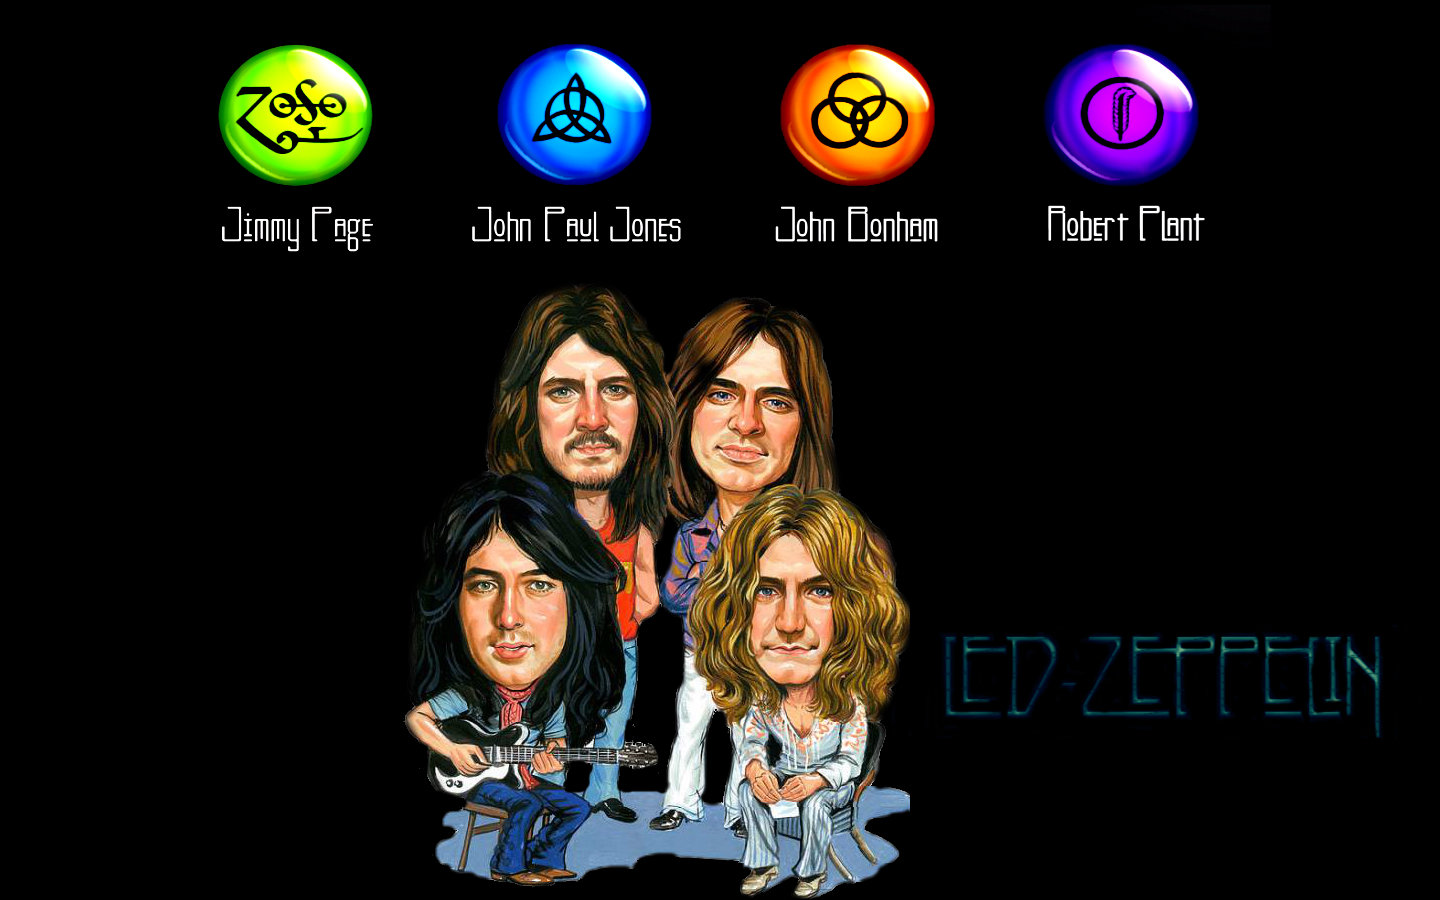 Download Hd 1440x900 Led Zeppelin Computer Wallpaper Id 401647 For